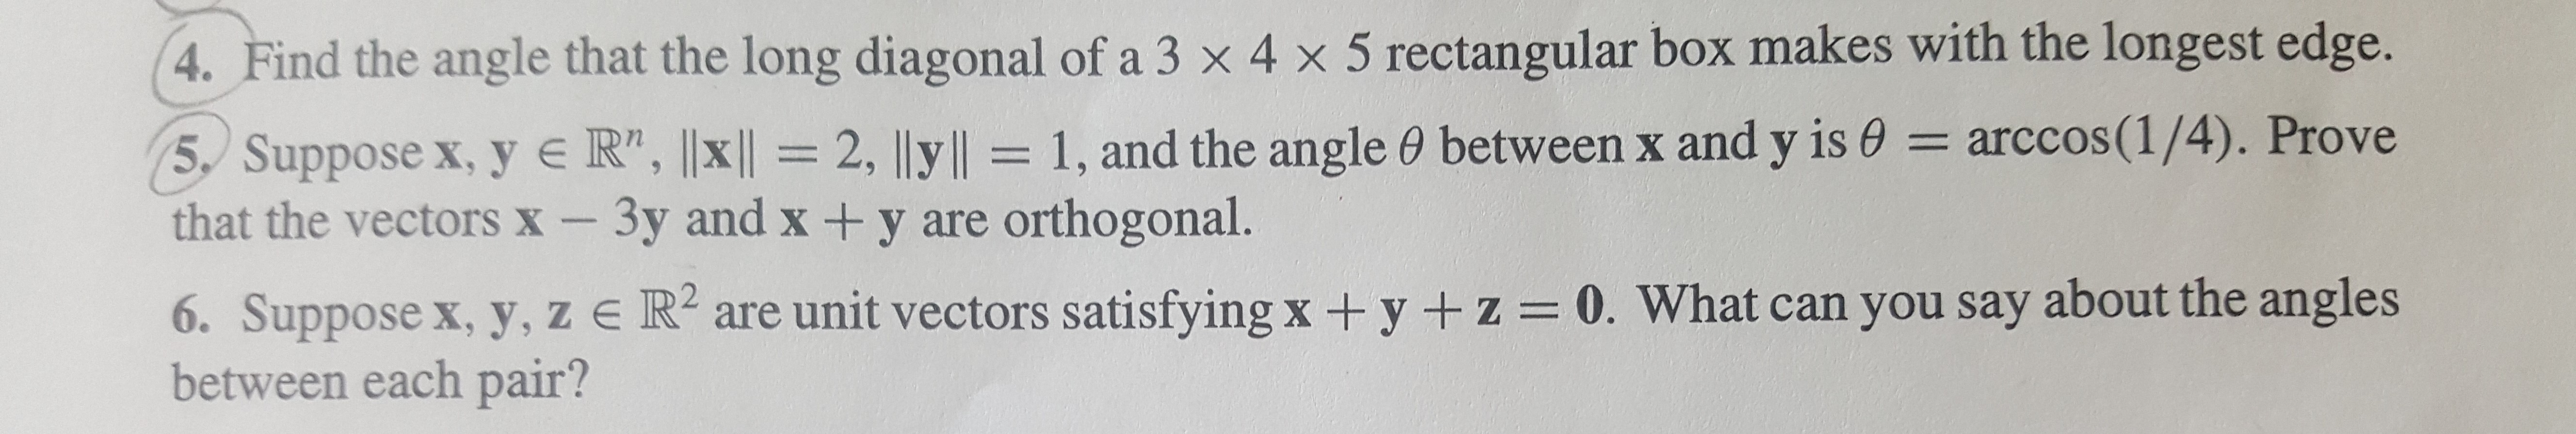 """4. Find the angle that the long diagonal of a 3 x 4 x 5 rectangular box makes with the longest edge. = arccos(1/4). Prove 5, Suppose x, y e R"""", 